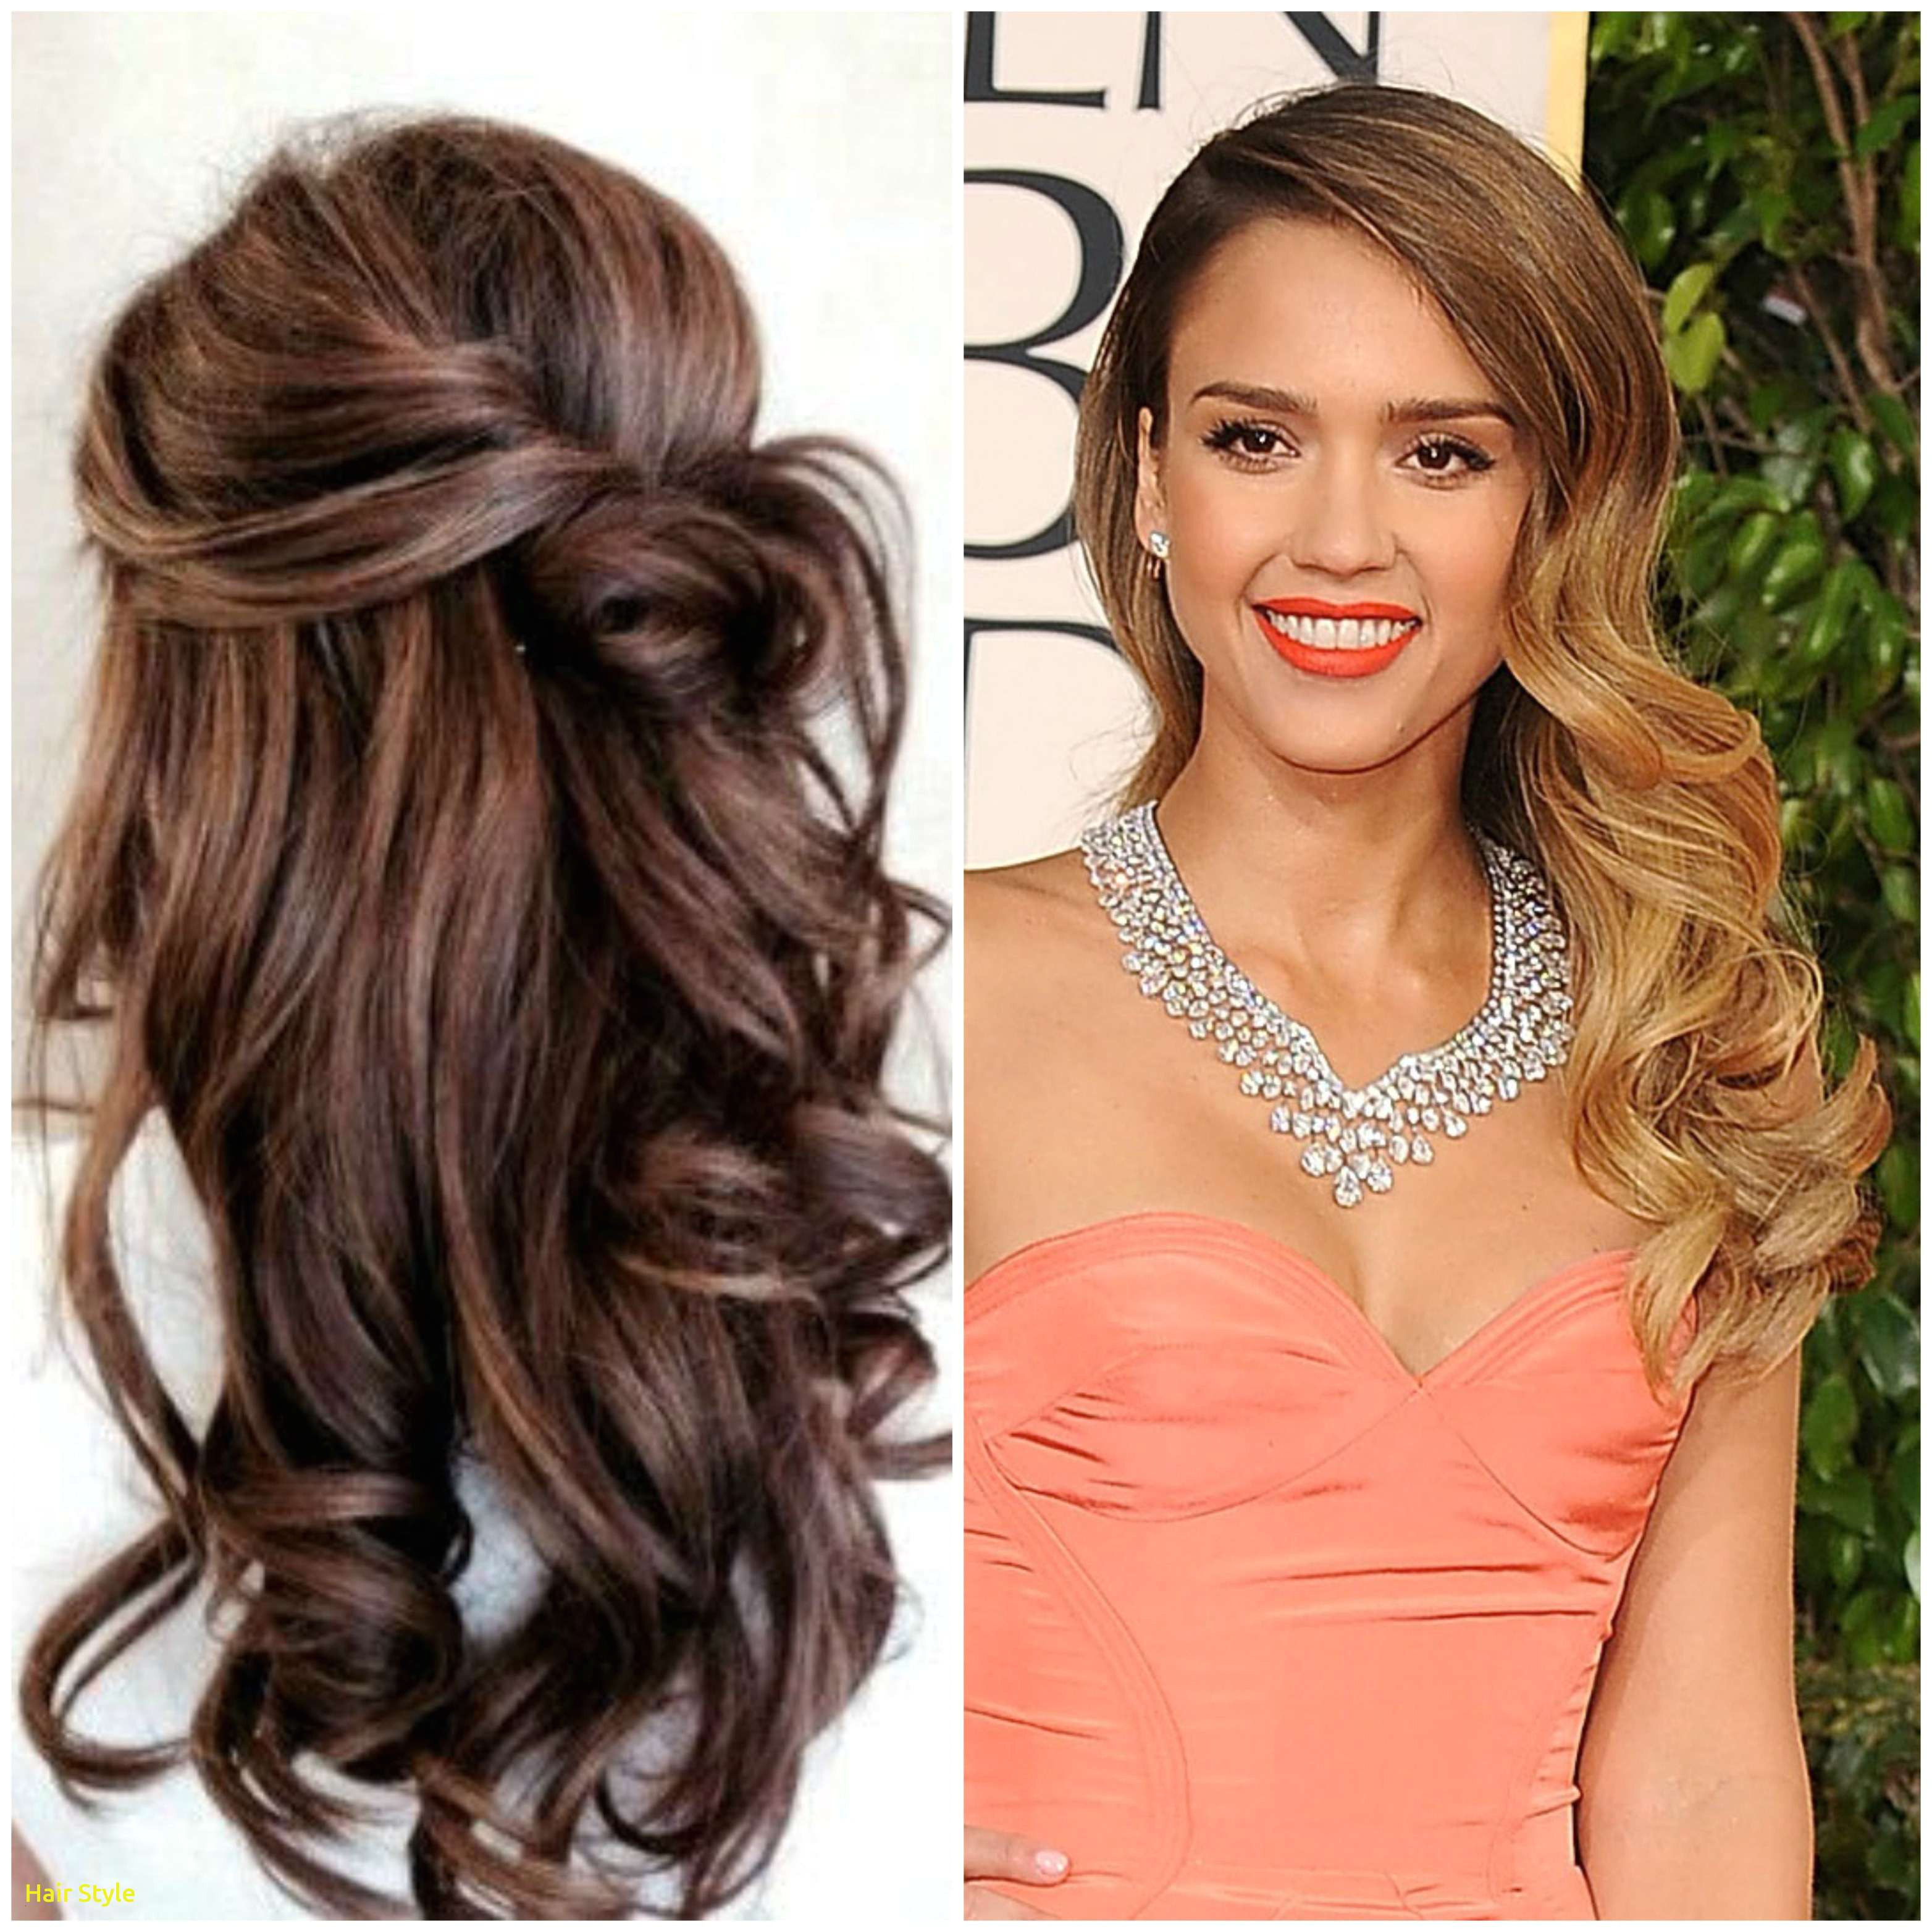 wedding hairstyles beautiful inspirational hairstyles for long hair 2015 luxury i pinimg 1200x 0d Luxury Wedding Hairstyles Short Thin